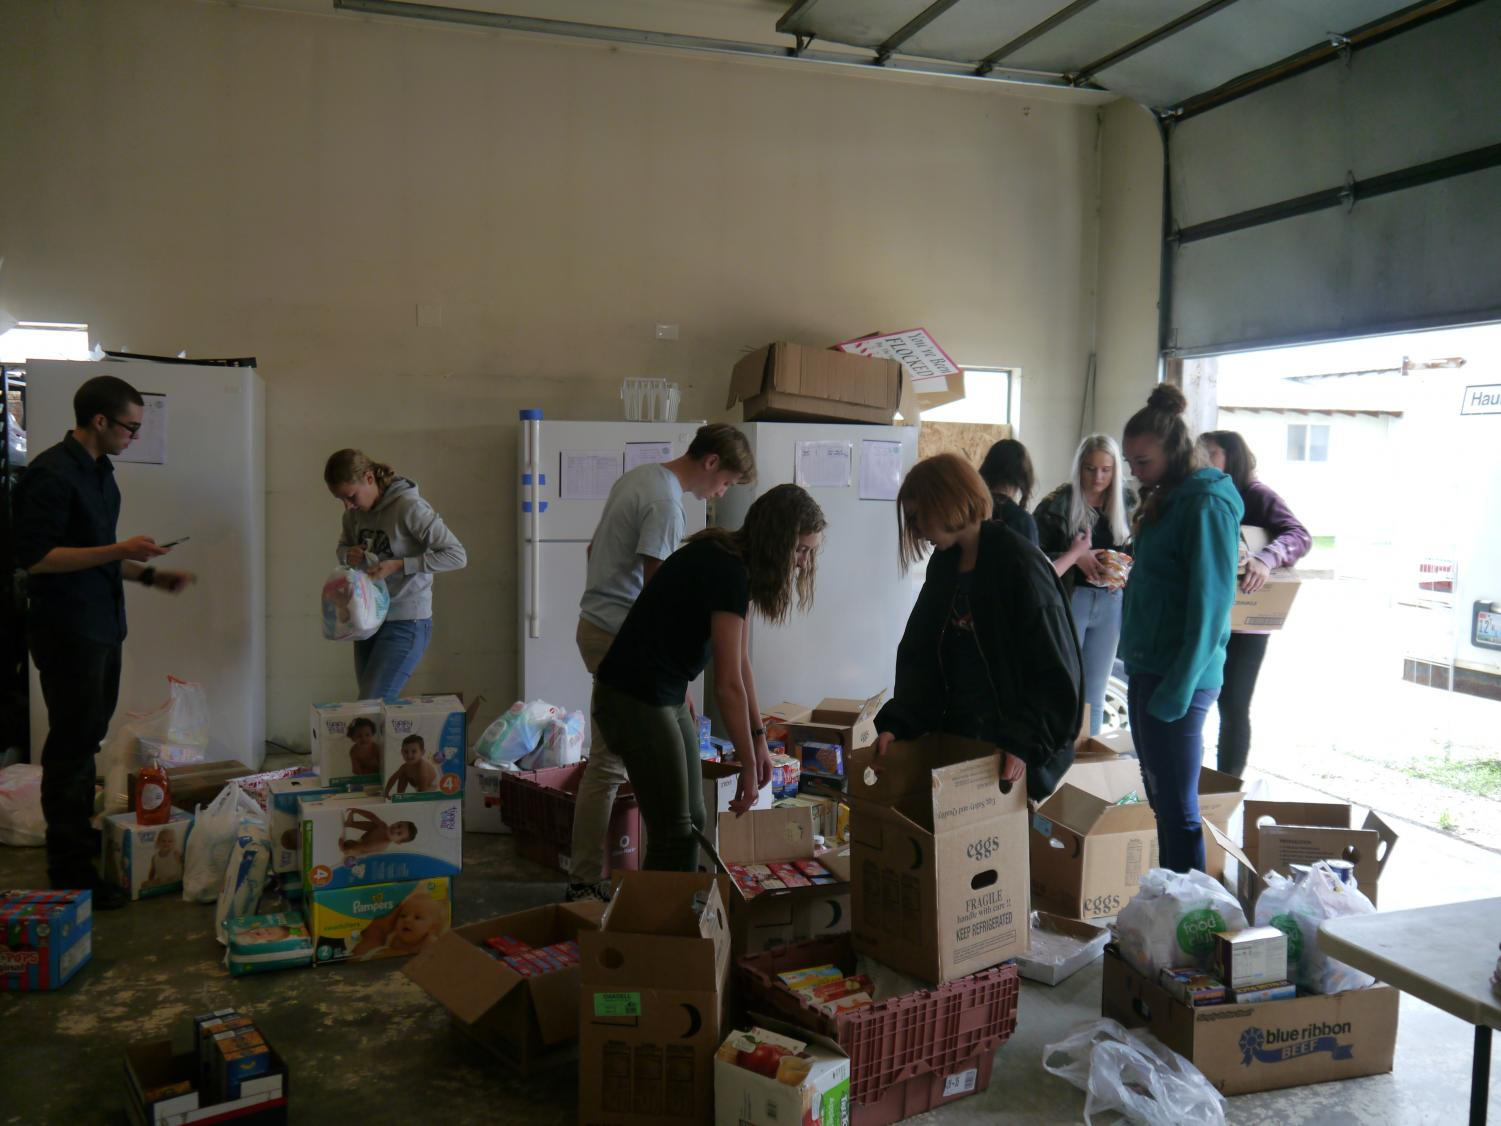 Members of the National Honor Society help organize and count donations.